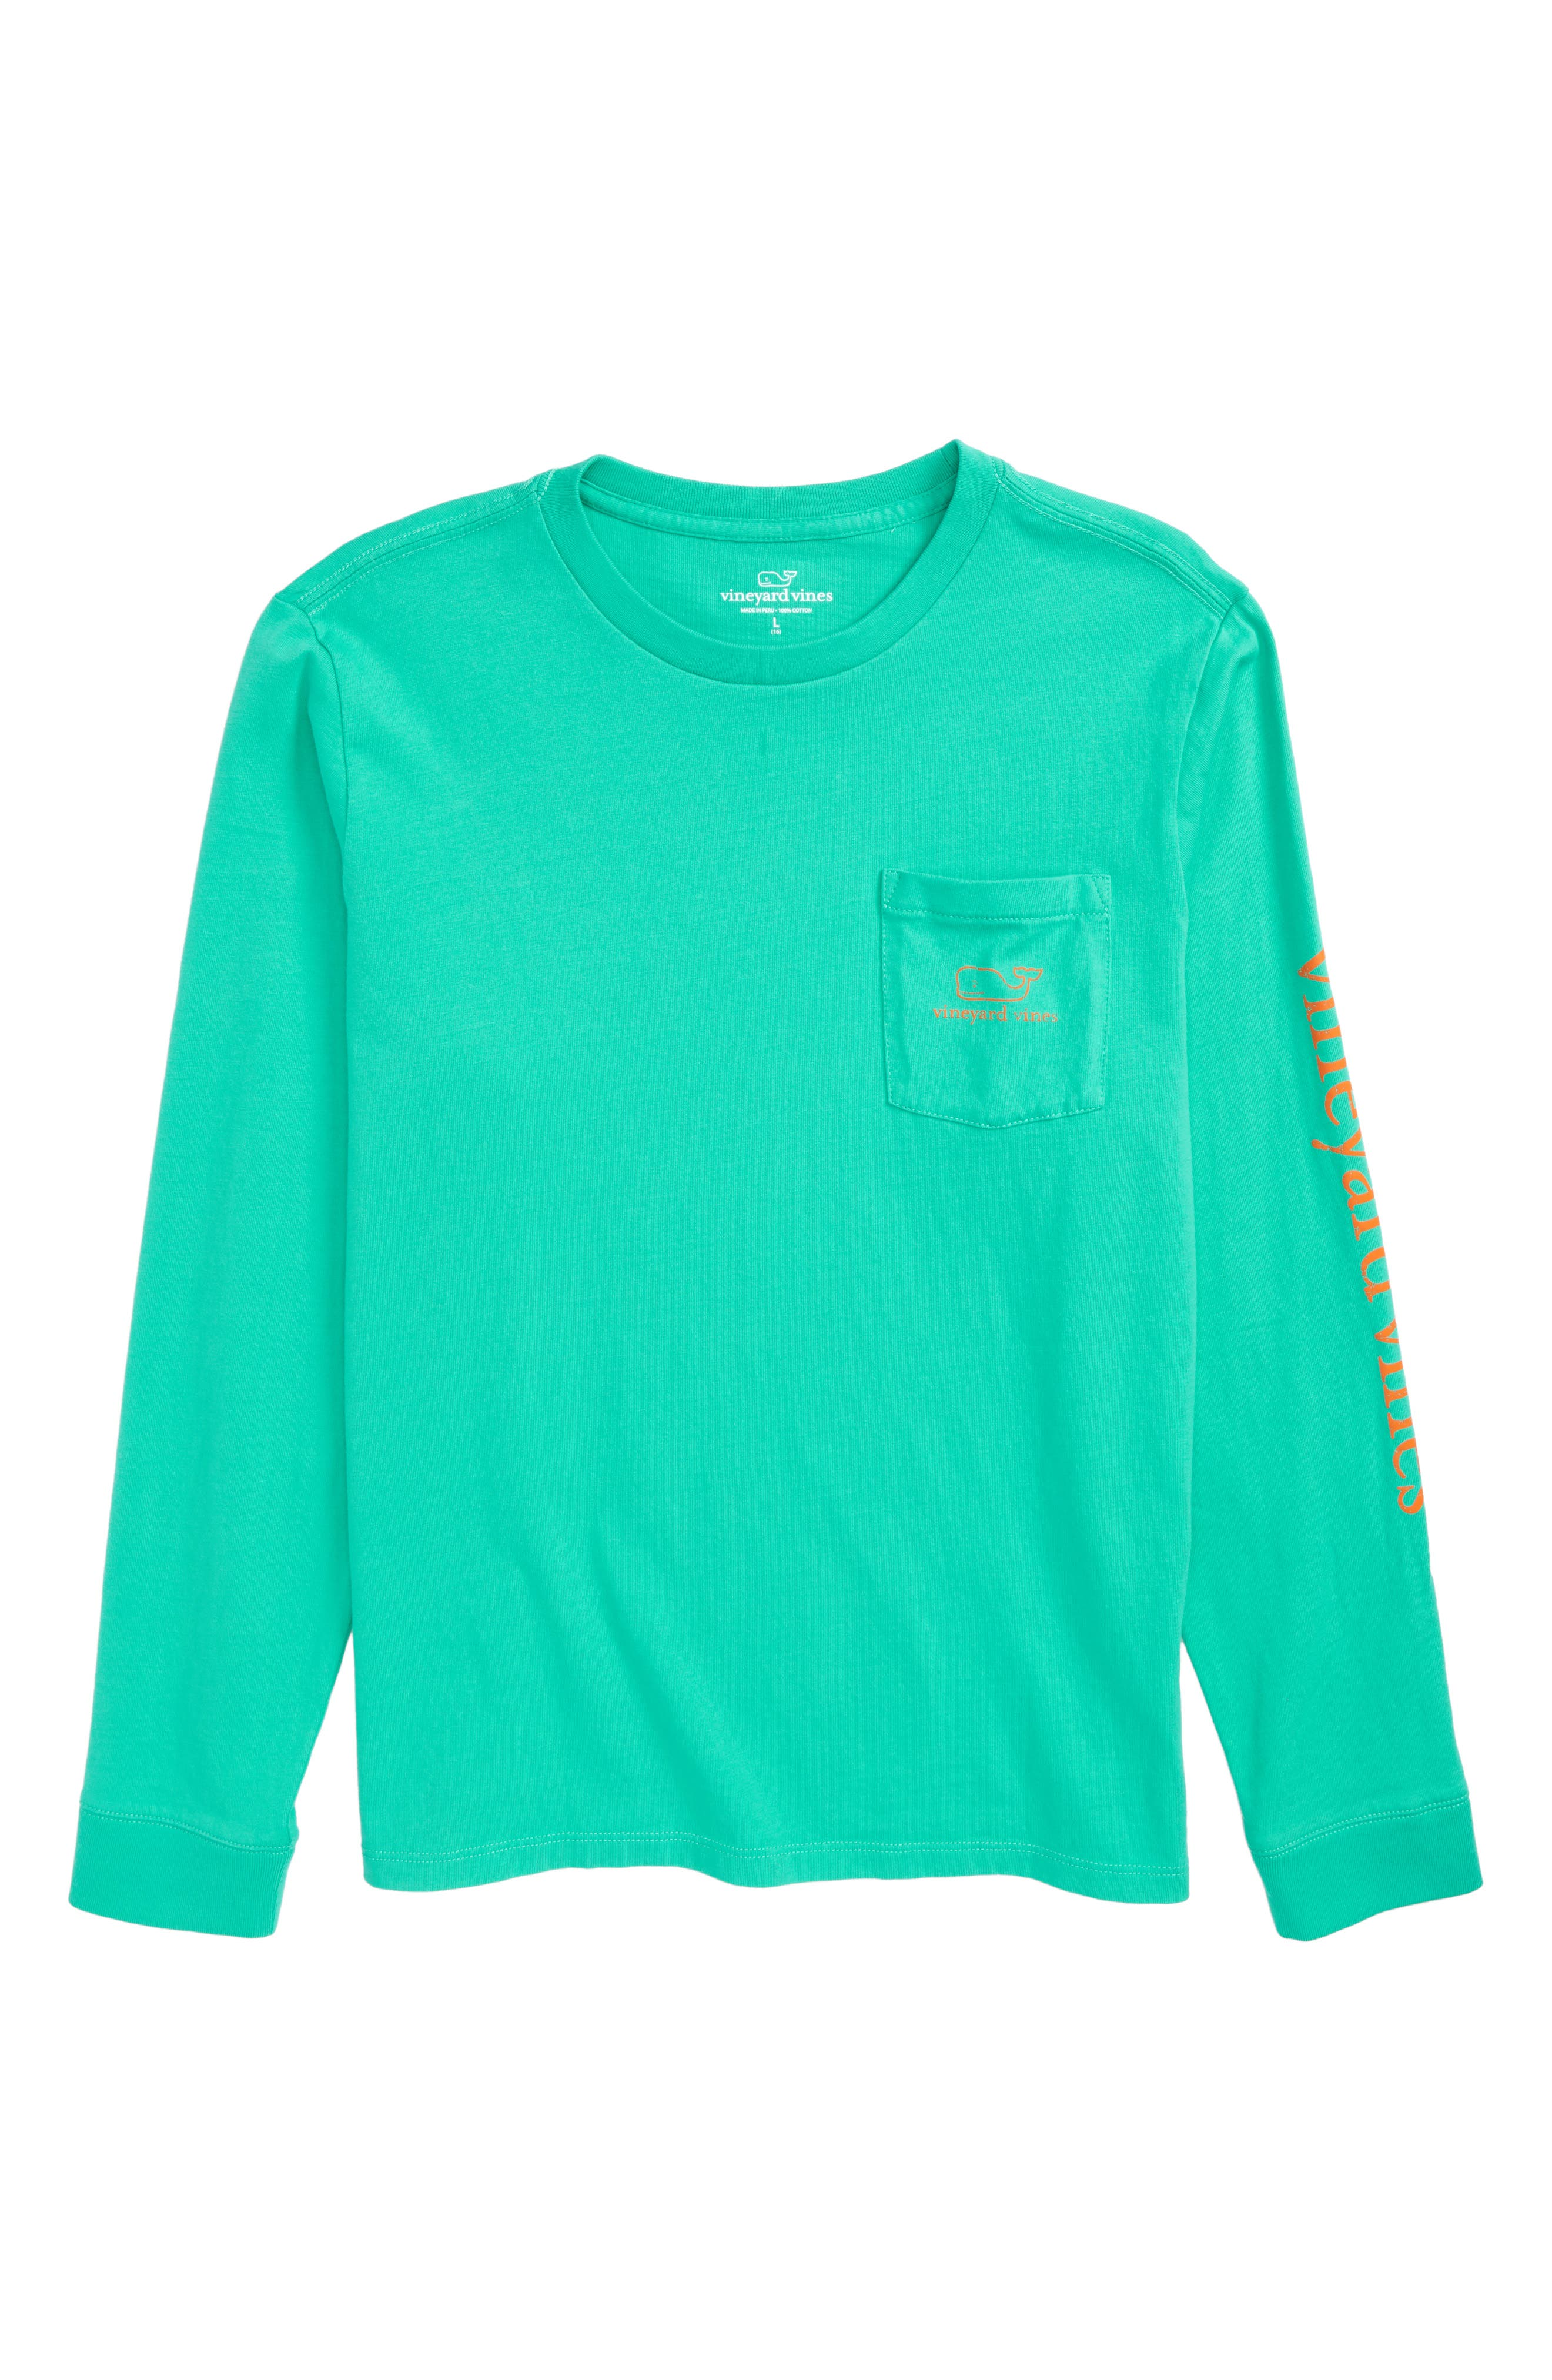 Vintage Whale Graphic Long Sleeve T-Shirt,                         Main,                         color, Caribbean Green